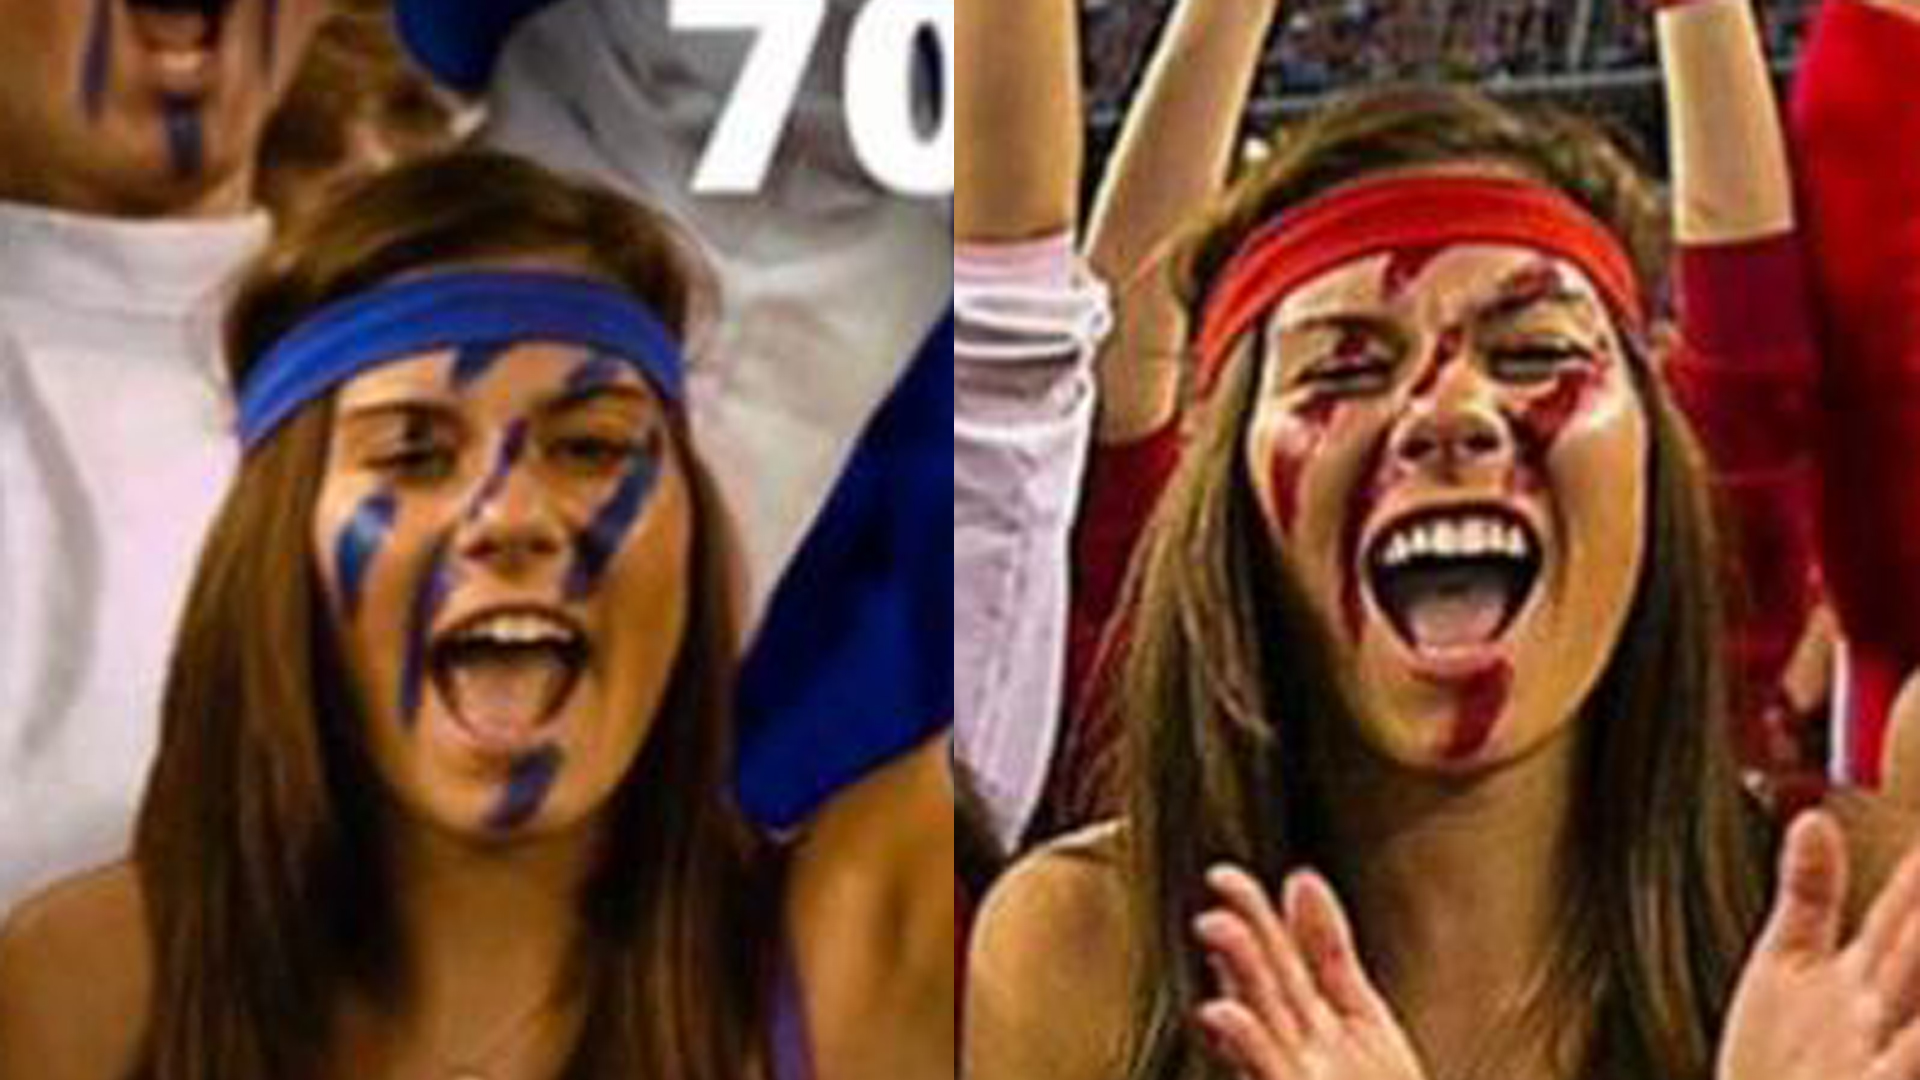 Company photoshops Badgers fans into Duke colors for Internet ad